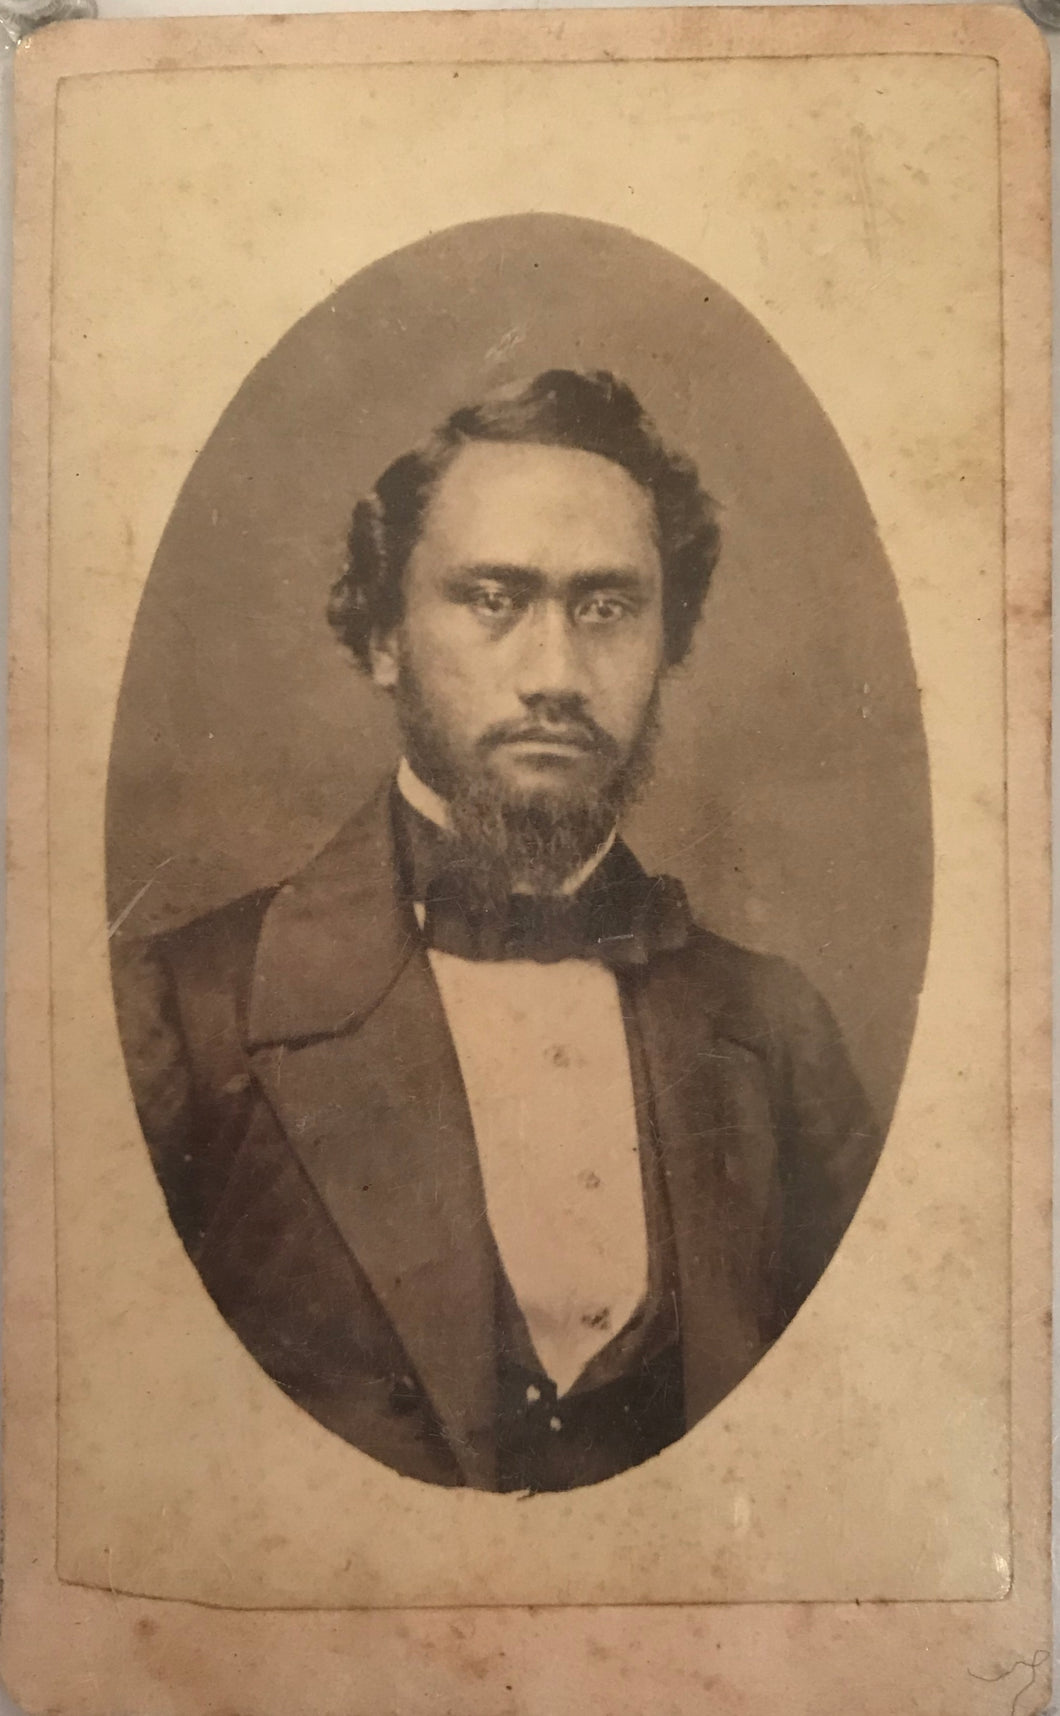 1850s Rare Cabinet Card of King Kamehameha IV by Williams